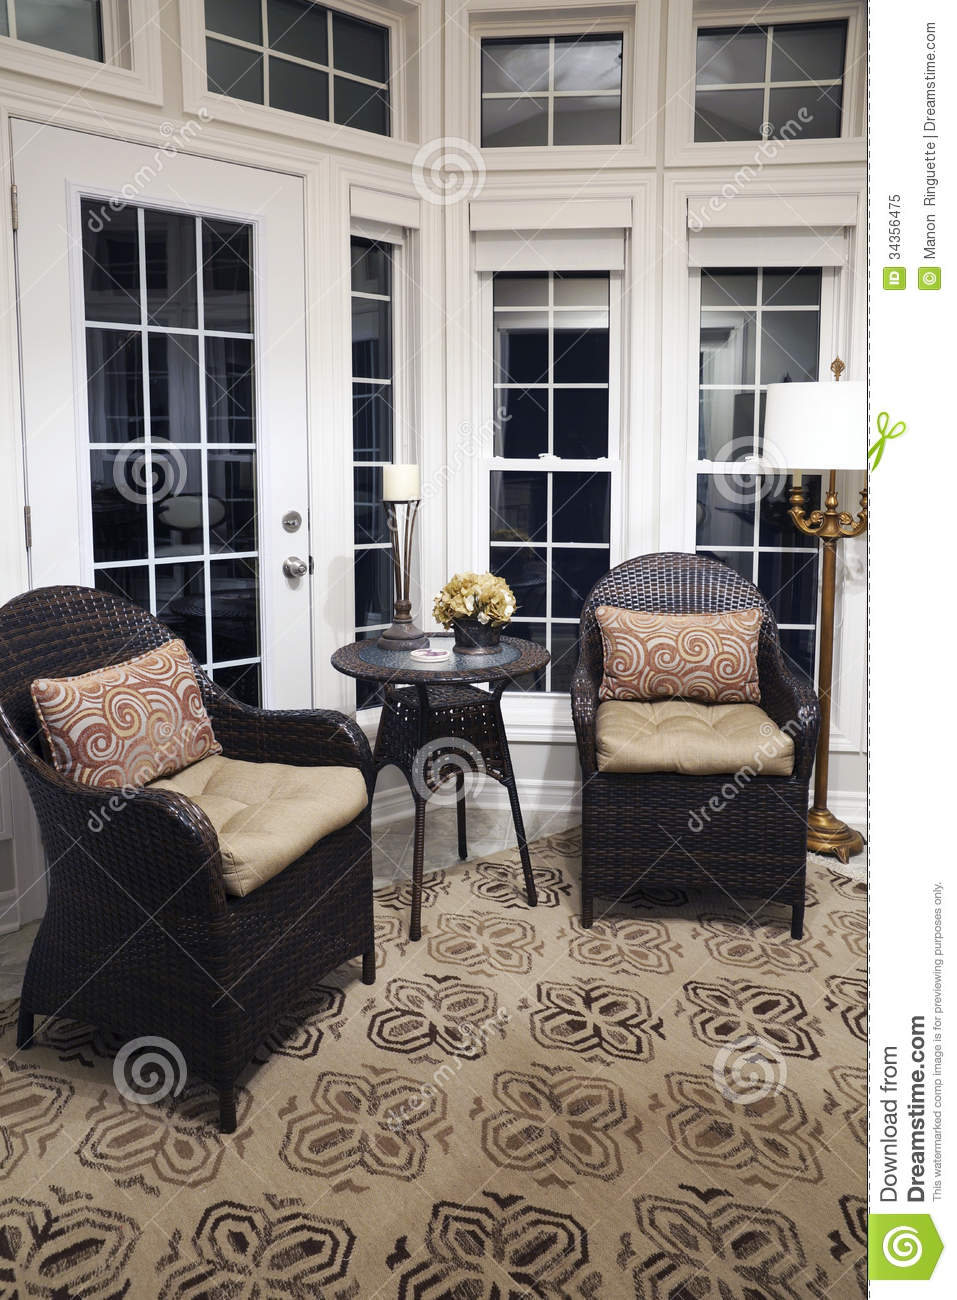 wicker furniture for sunroom. Floor To Ceiling Windows In Sunroom Stock Image - Of Contemporary, Furnishings: 34356475 Wicker Furniture For